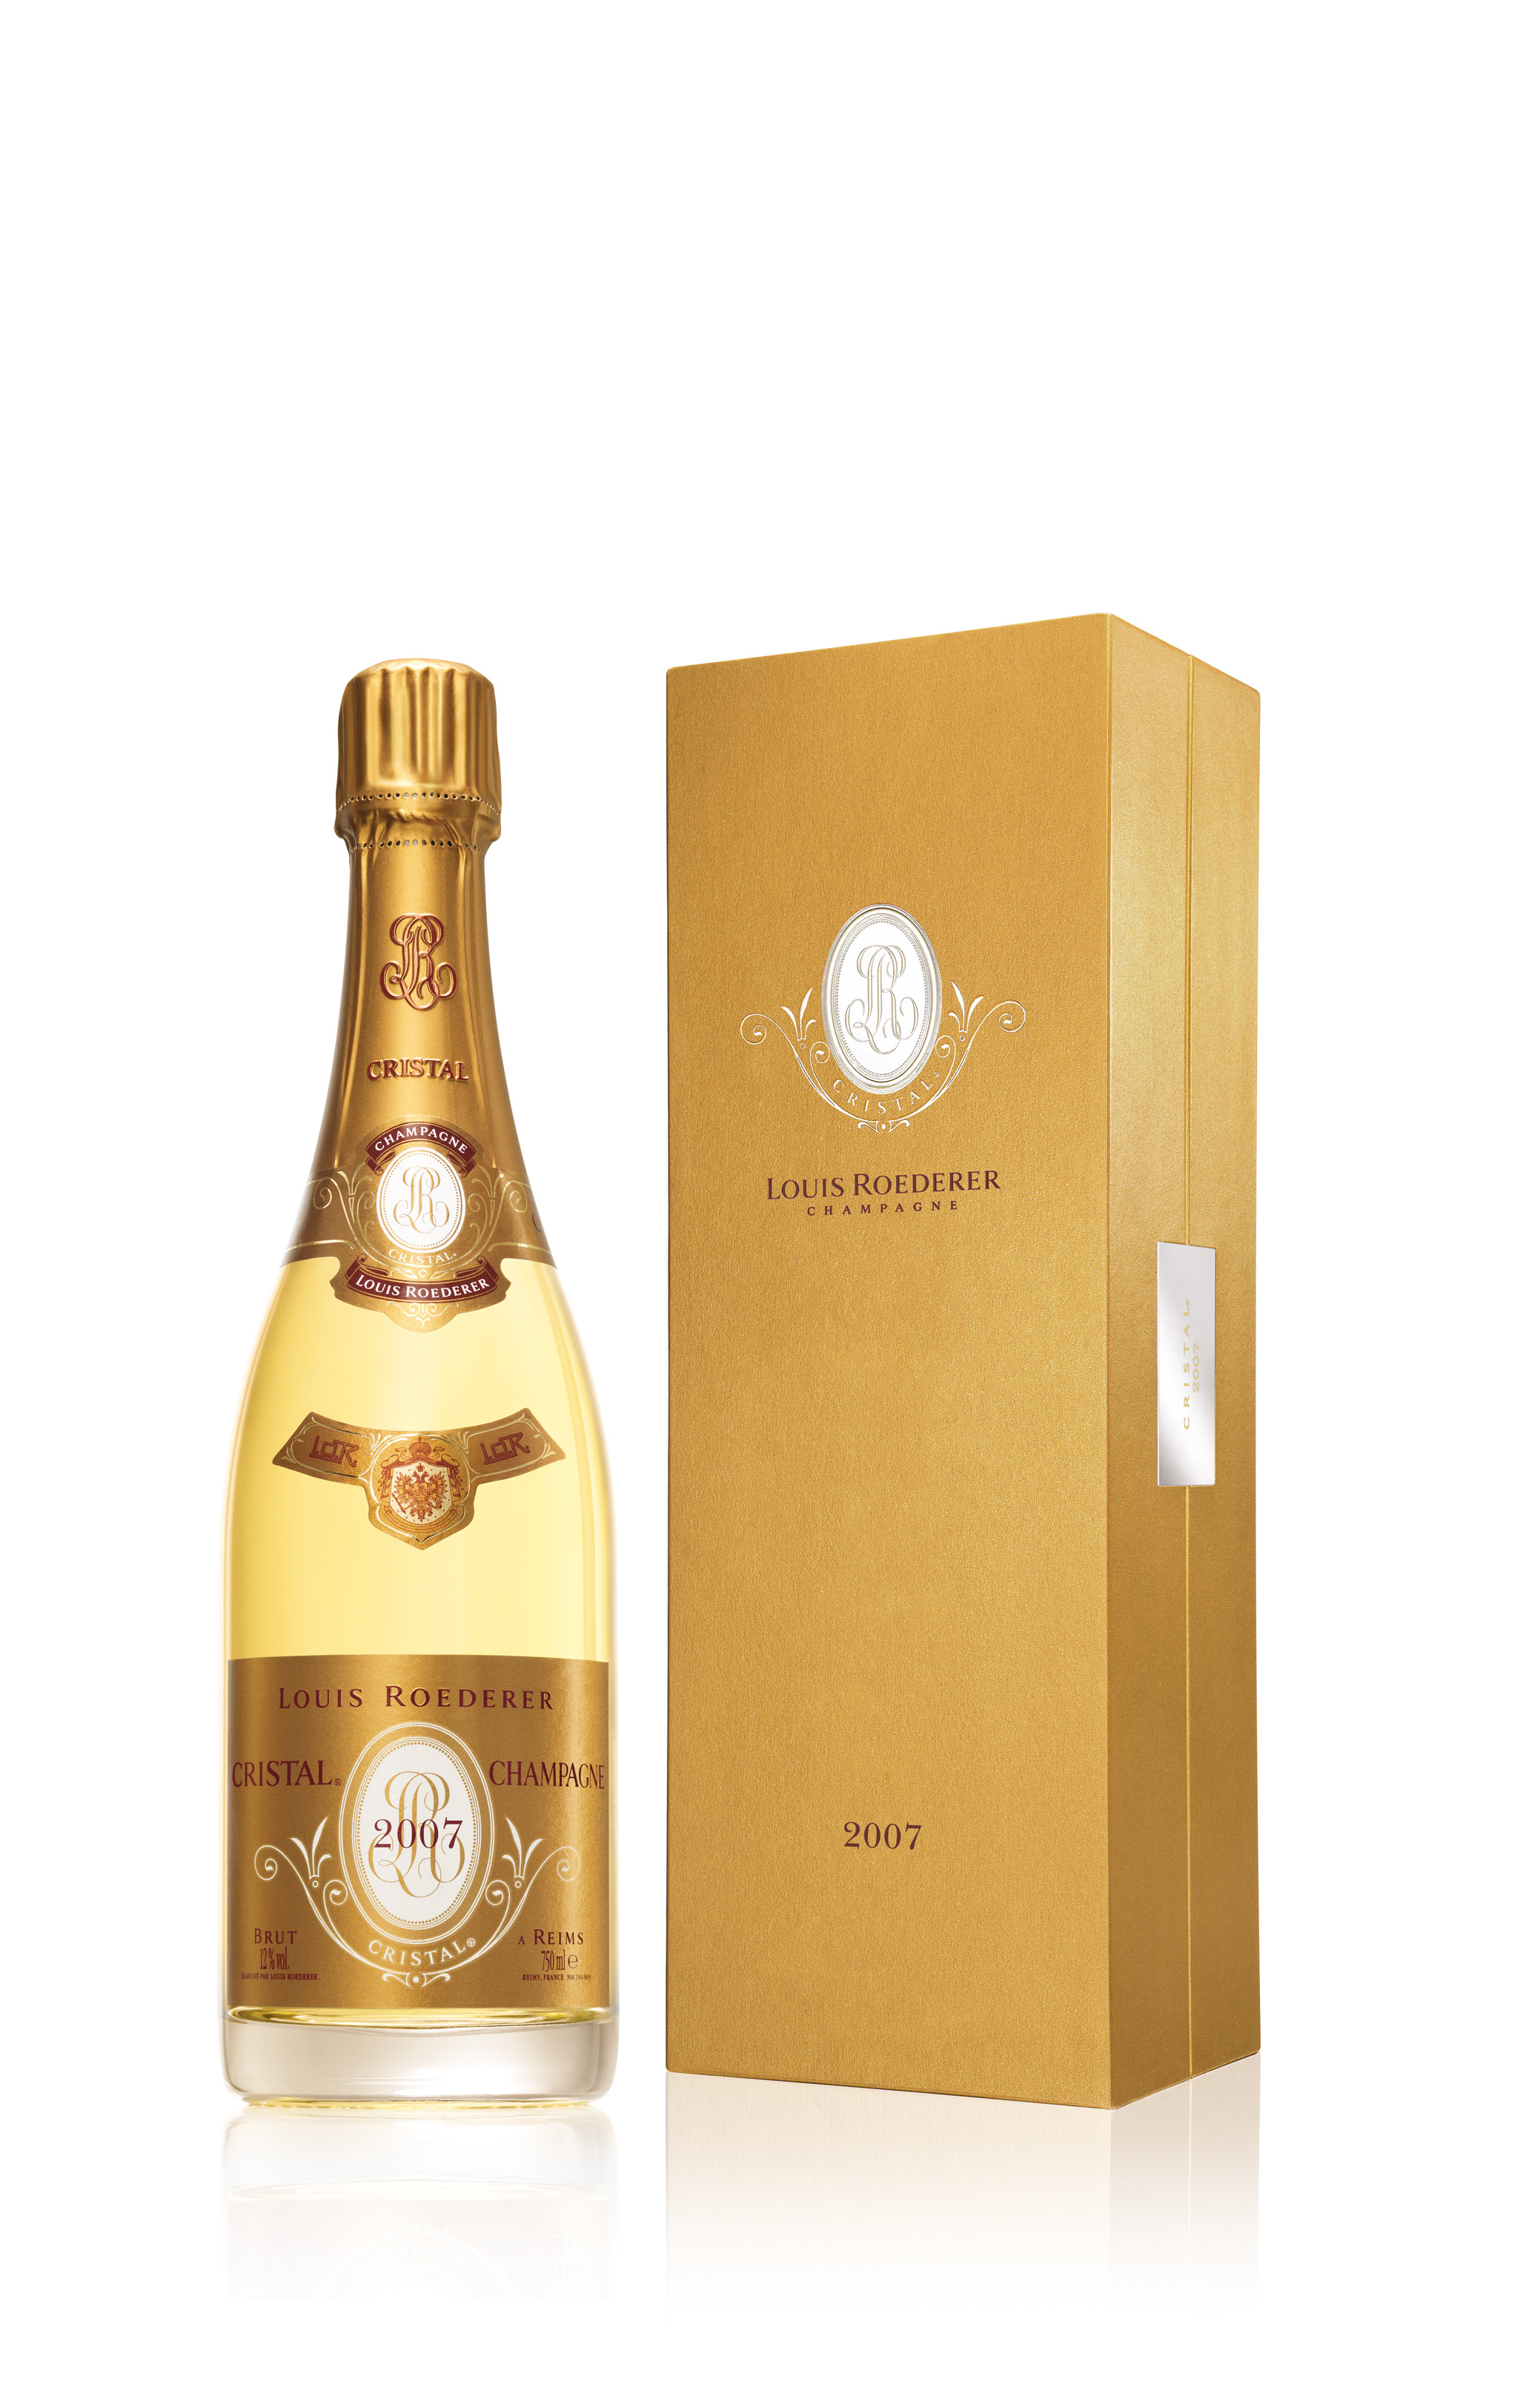 Image result for cristal champagne